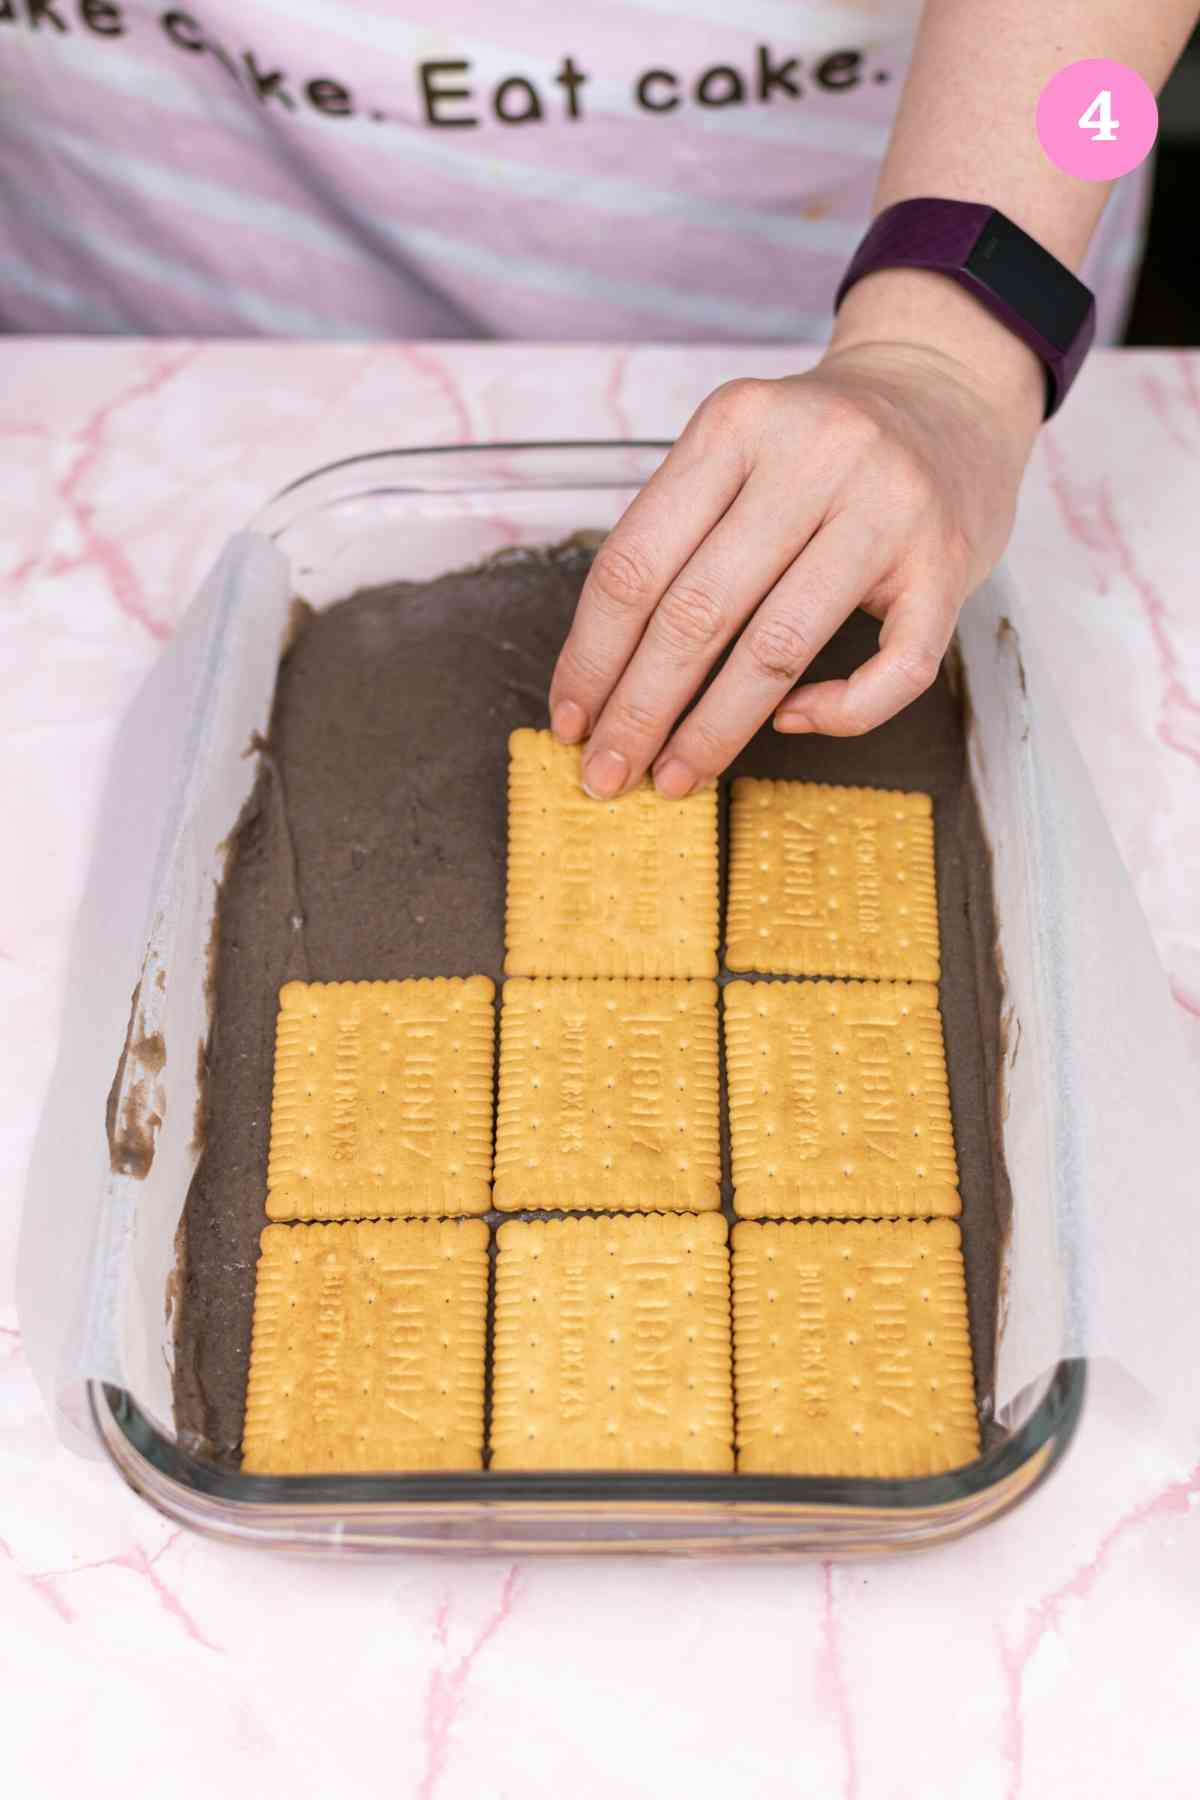 Adding another layer of plain biscuits on top of the Oreo cream